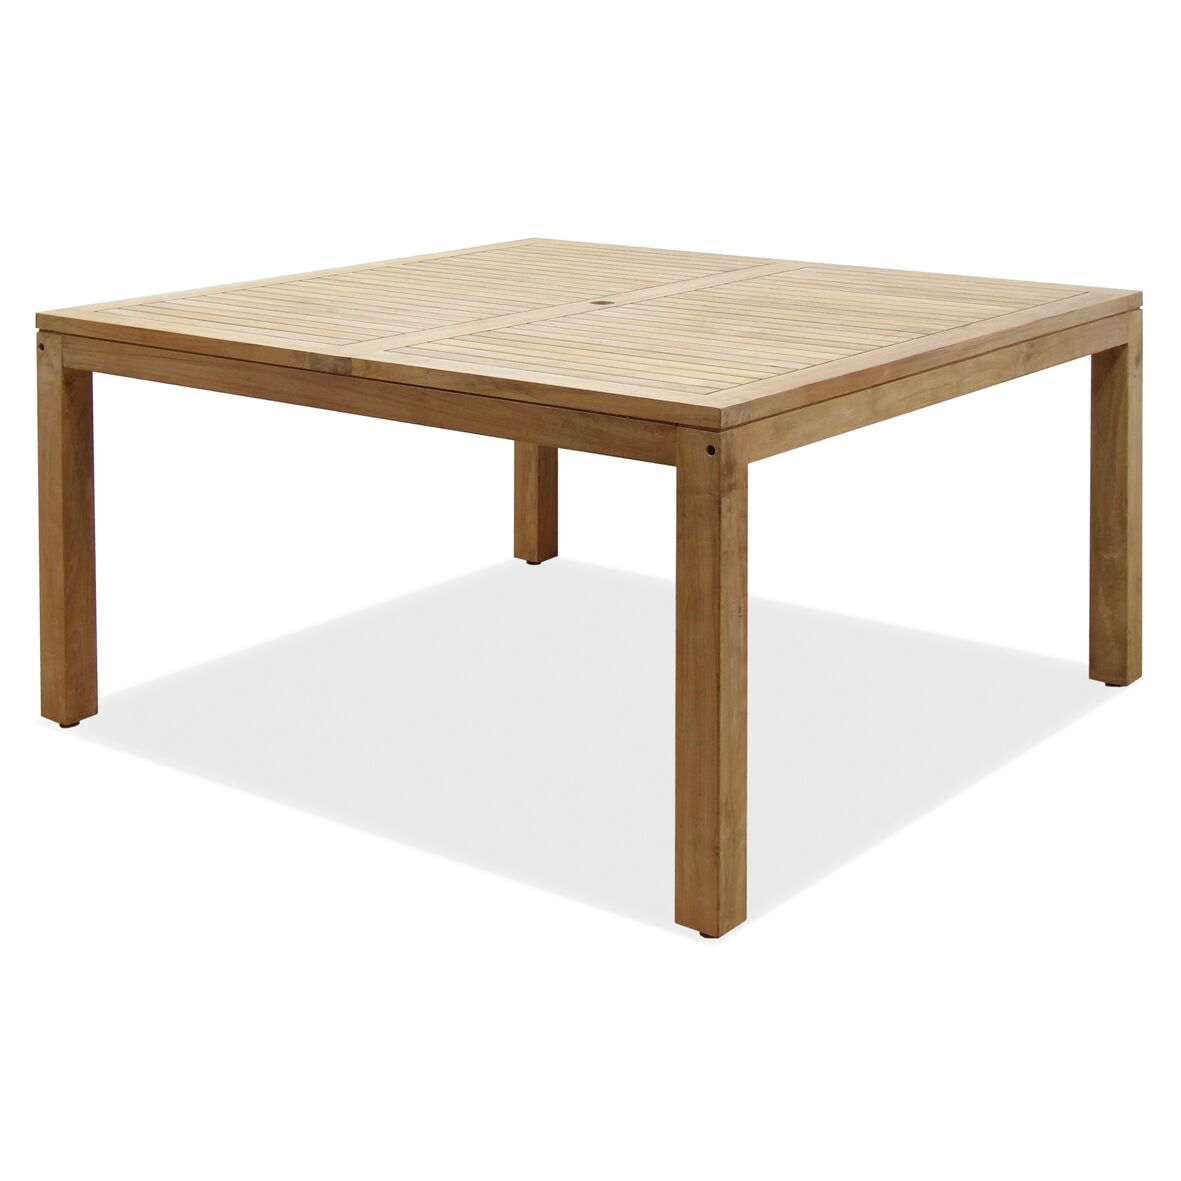 Bridgepointe Square Wood Dining Table